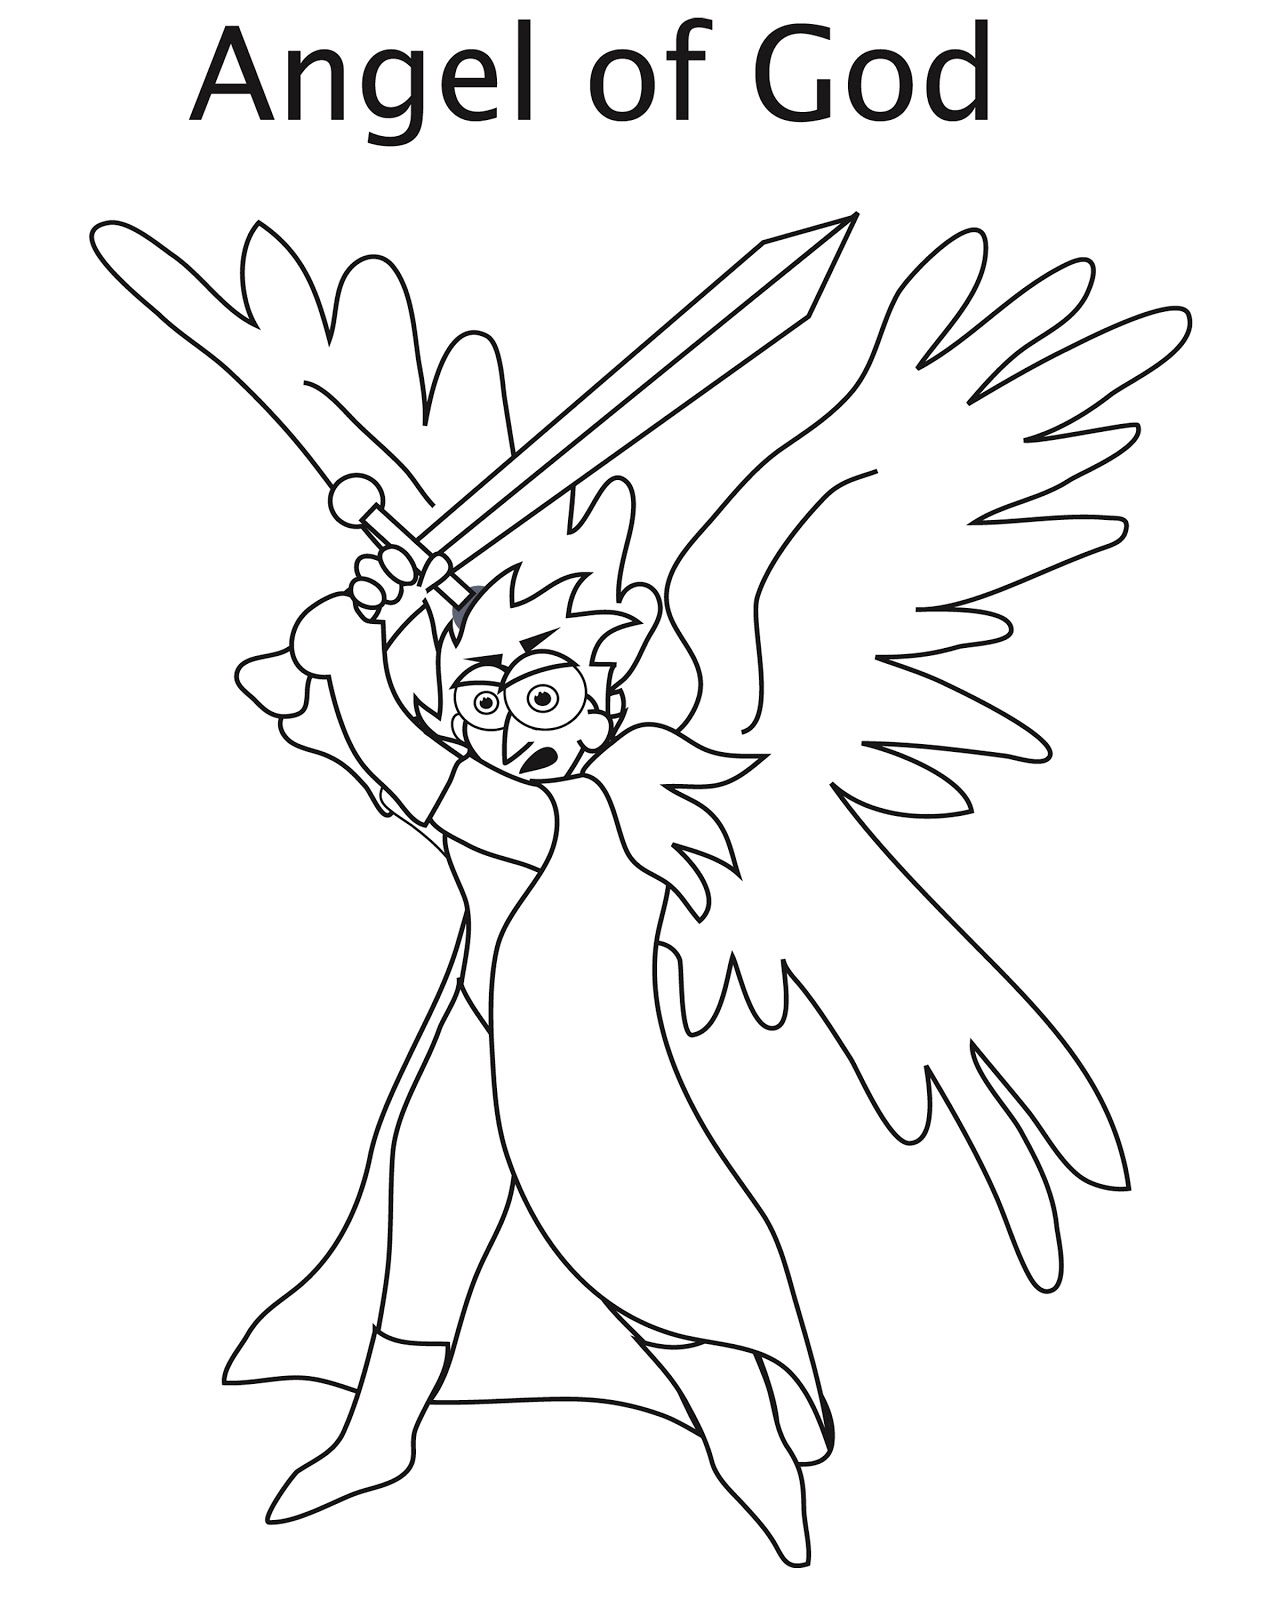 sword coloring pages - photo#36